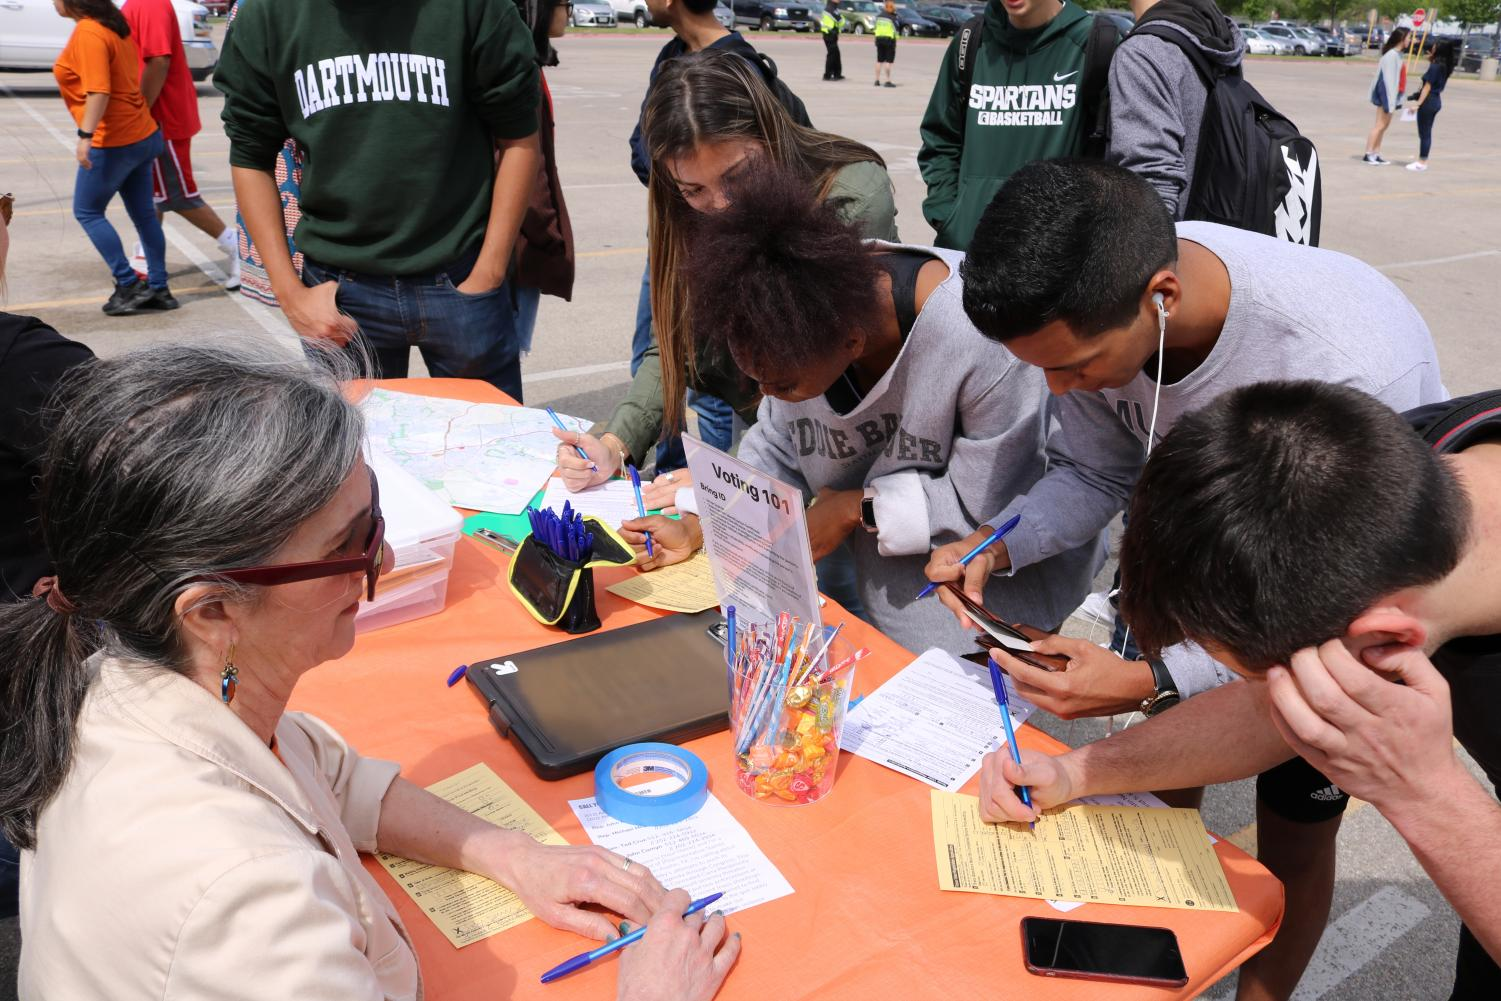 During+the+walkout%2C+eligible+students+were+allowed+to+register+to+vote.+